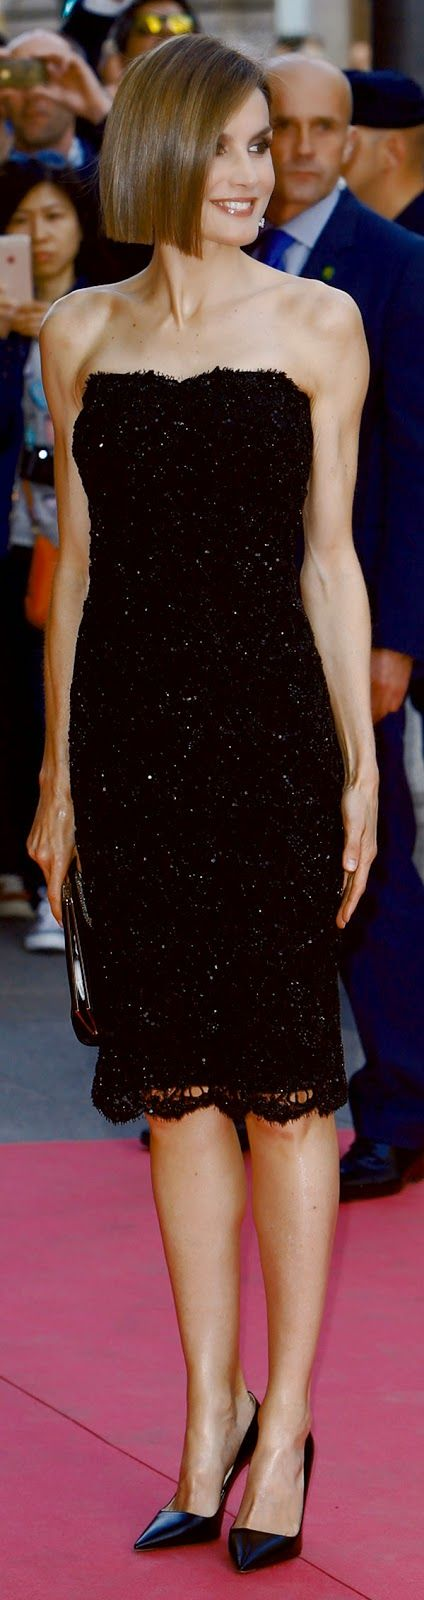 MyRoyals:  Queen Letizia debuted a new hairstyle as she attended the Women Magazine Awards ceremony, Casino of Madrid, Spain, April 20, 2015